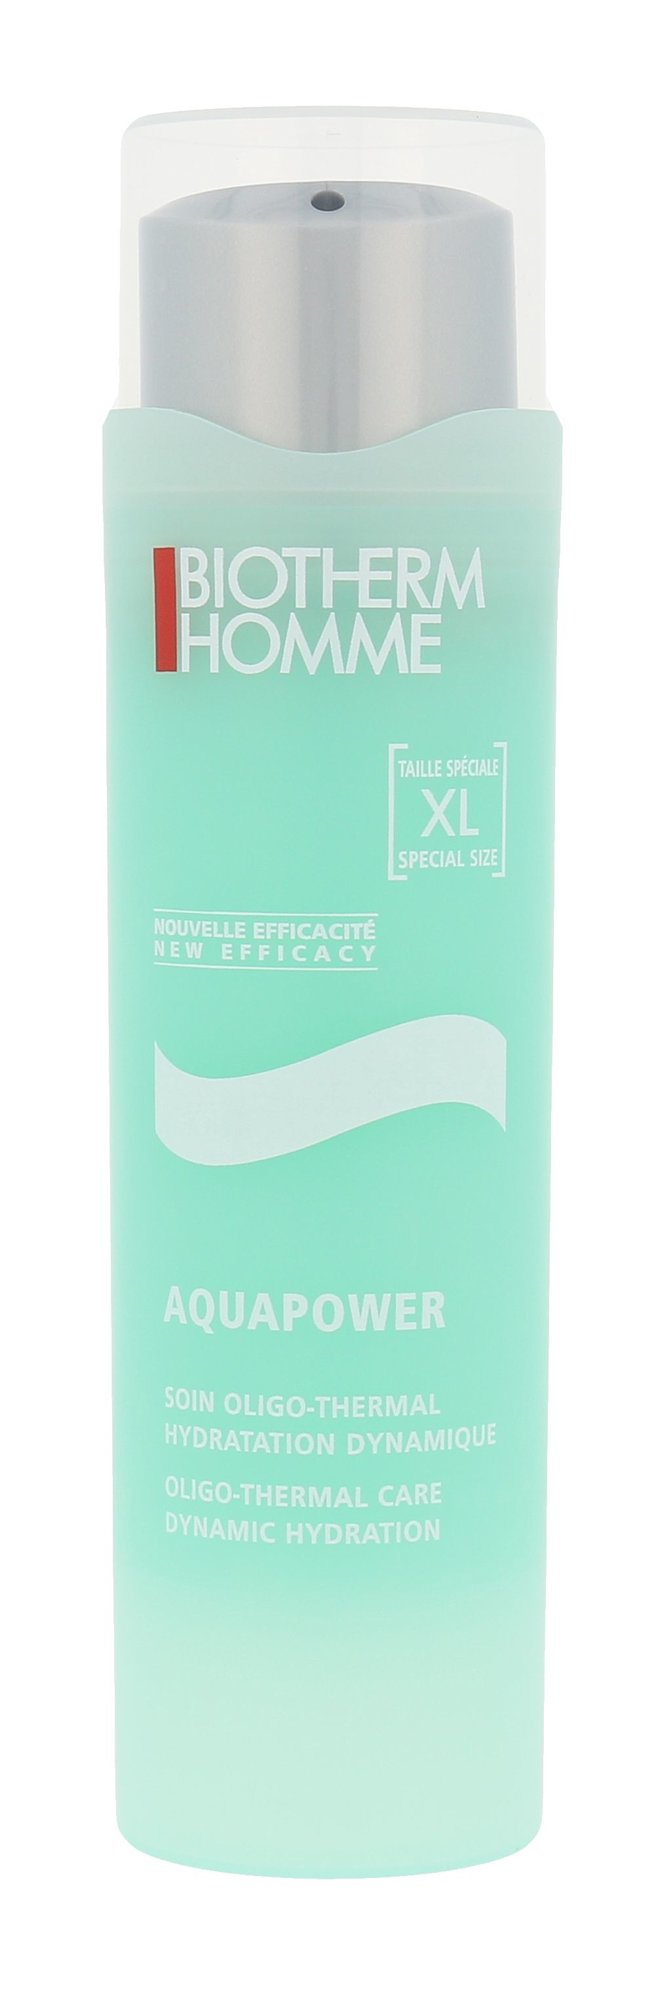 Biotherm Homme Aquapower Cosmetic 100ml